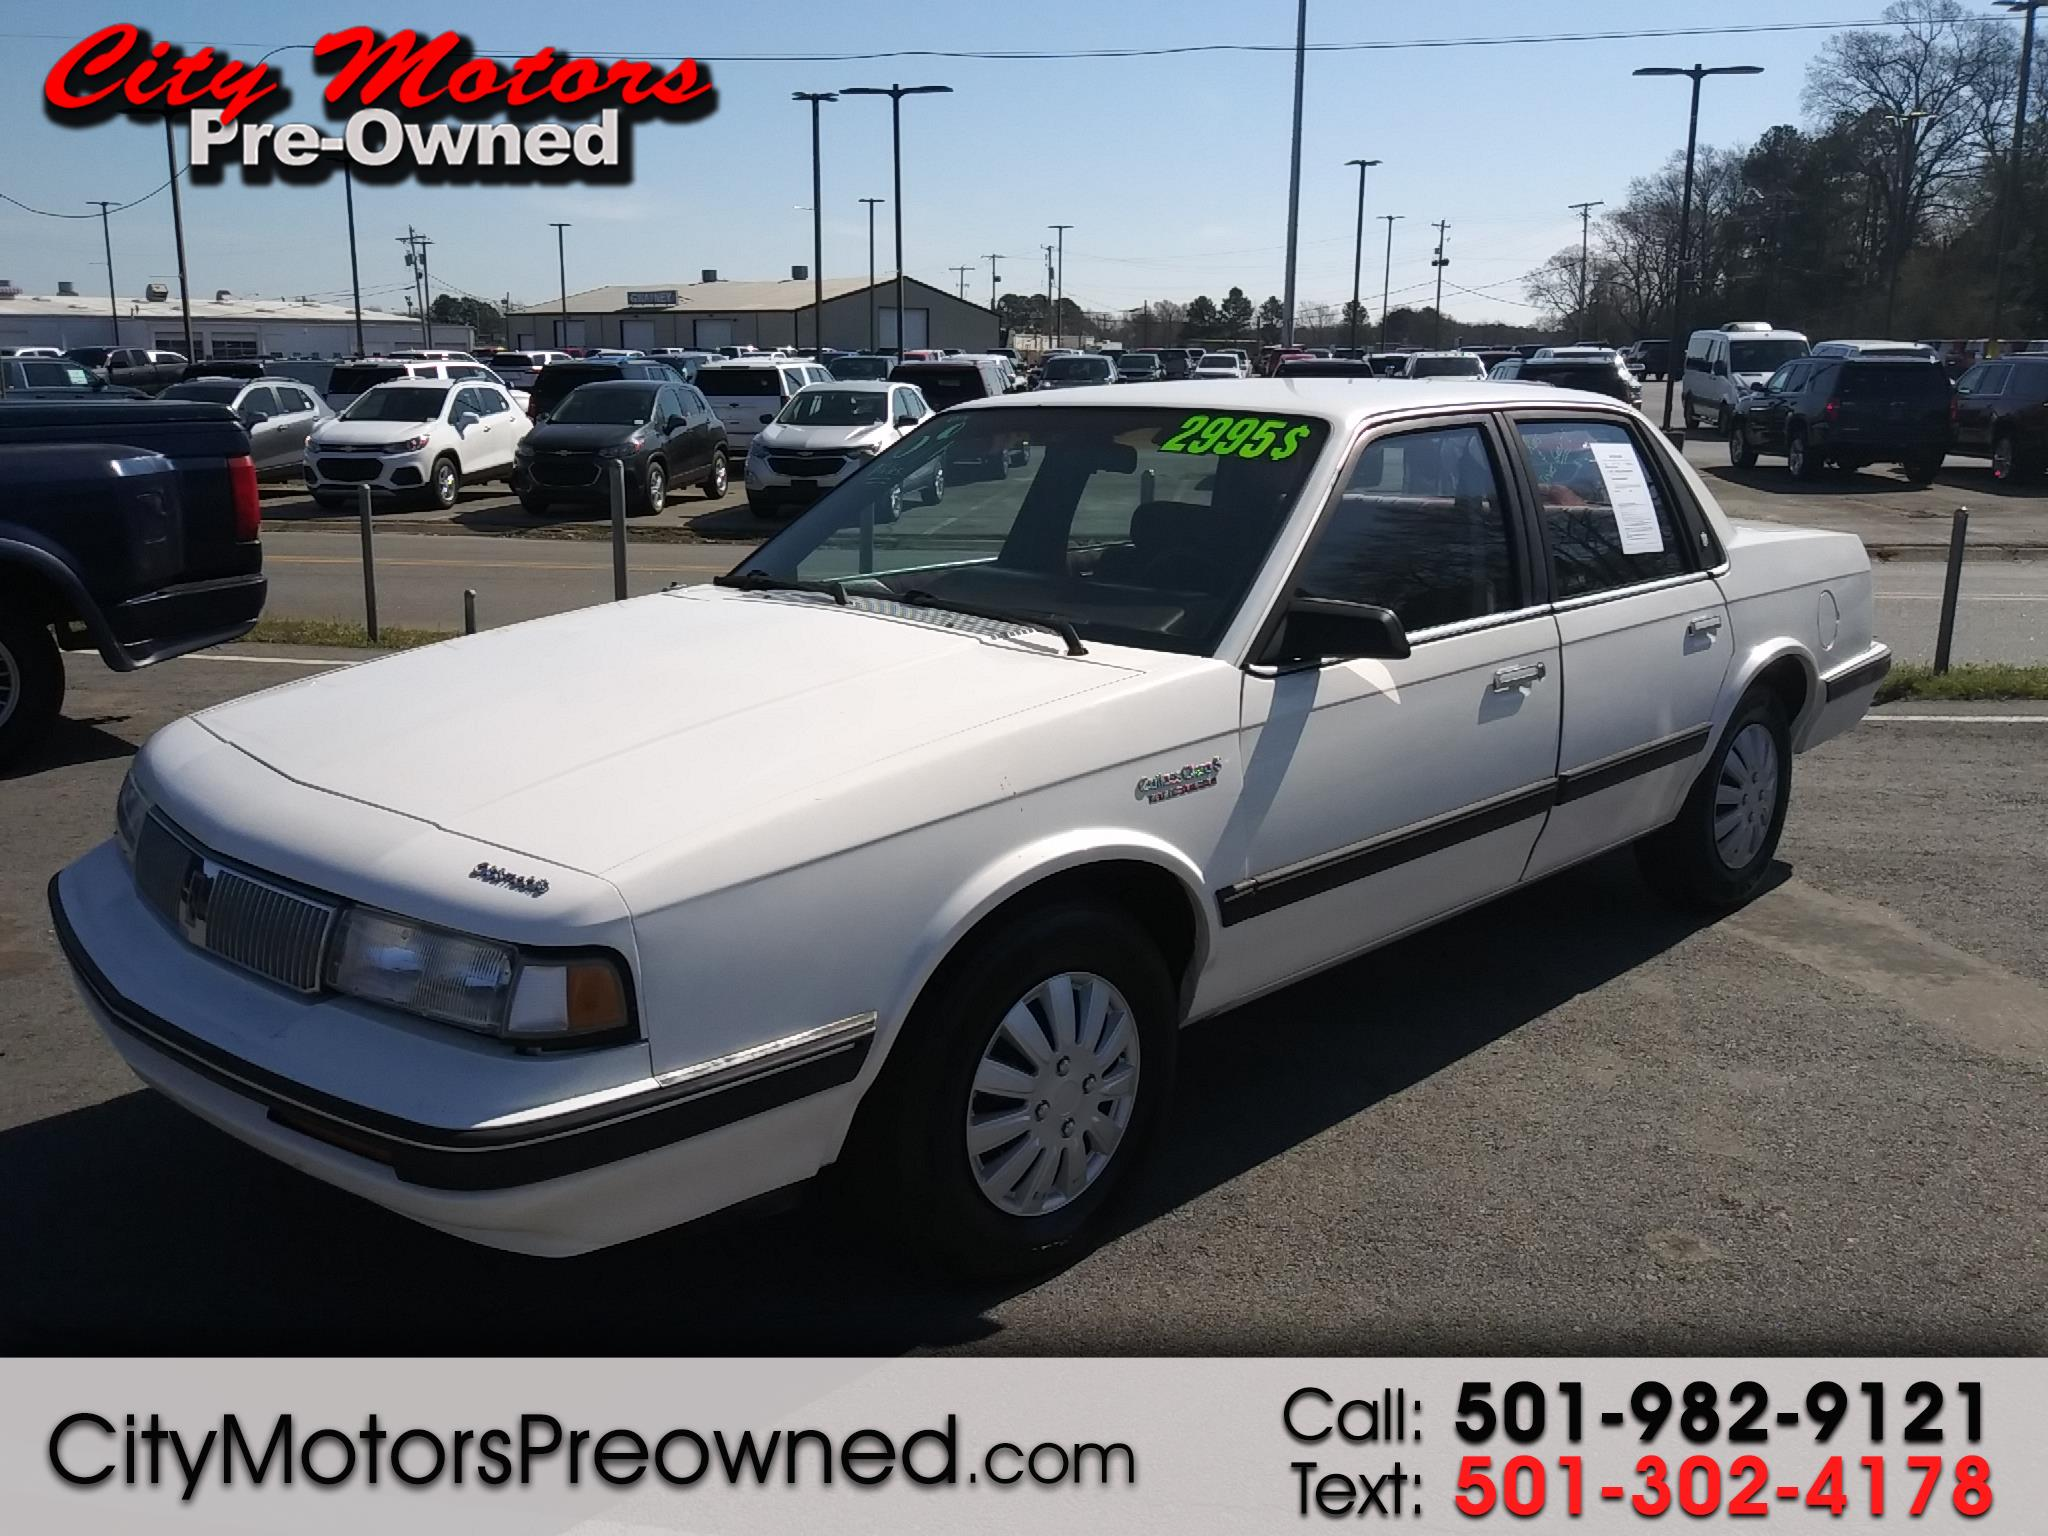 1992 Oldsmobile Cutlass Ciera/Cruiser 4dr Sedan Ciera S